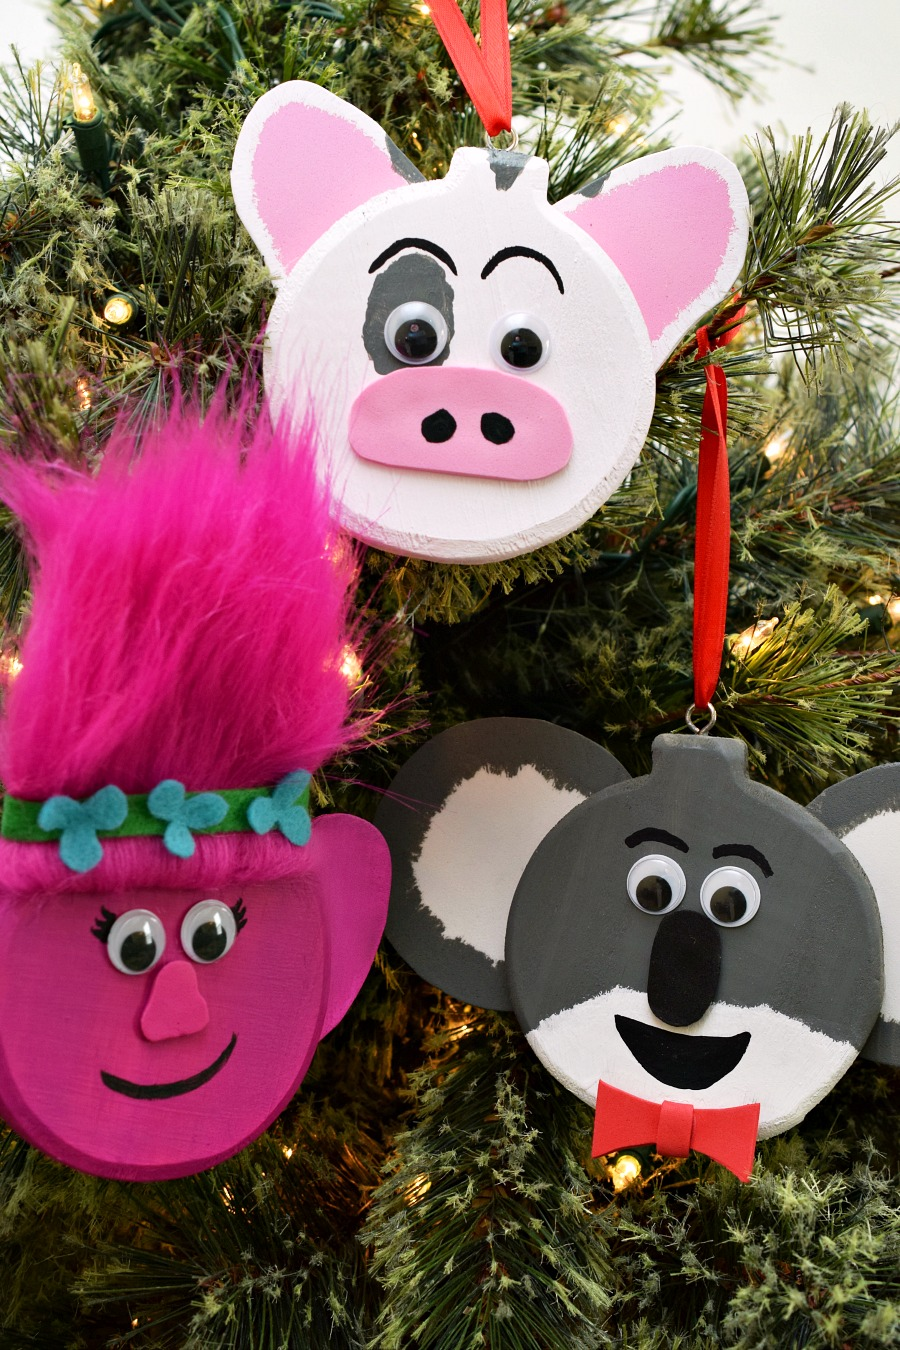 Pig christmas ornaments - Your Movie Inspired Ornaments Are Ready For Their Close Up On Your Christmas Tree